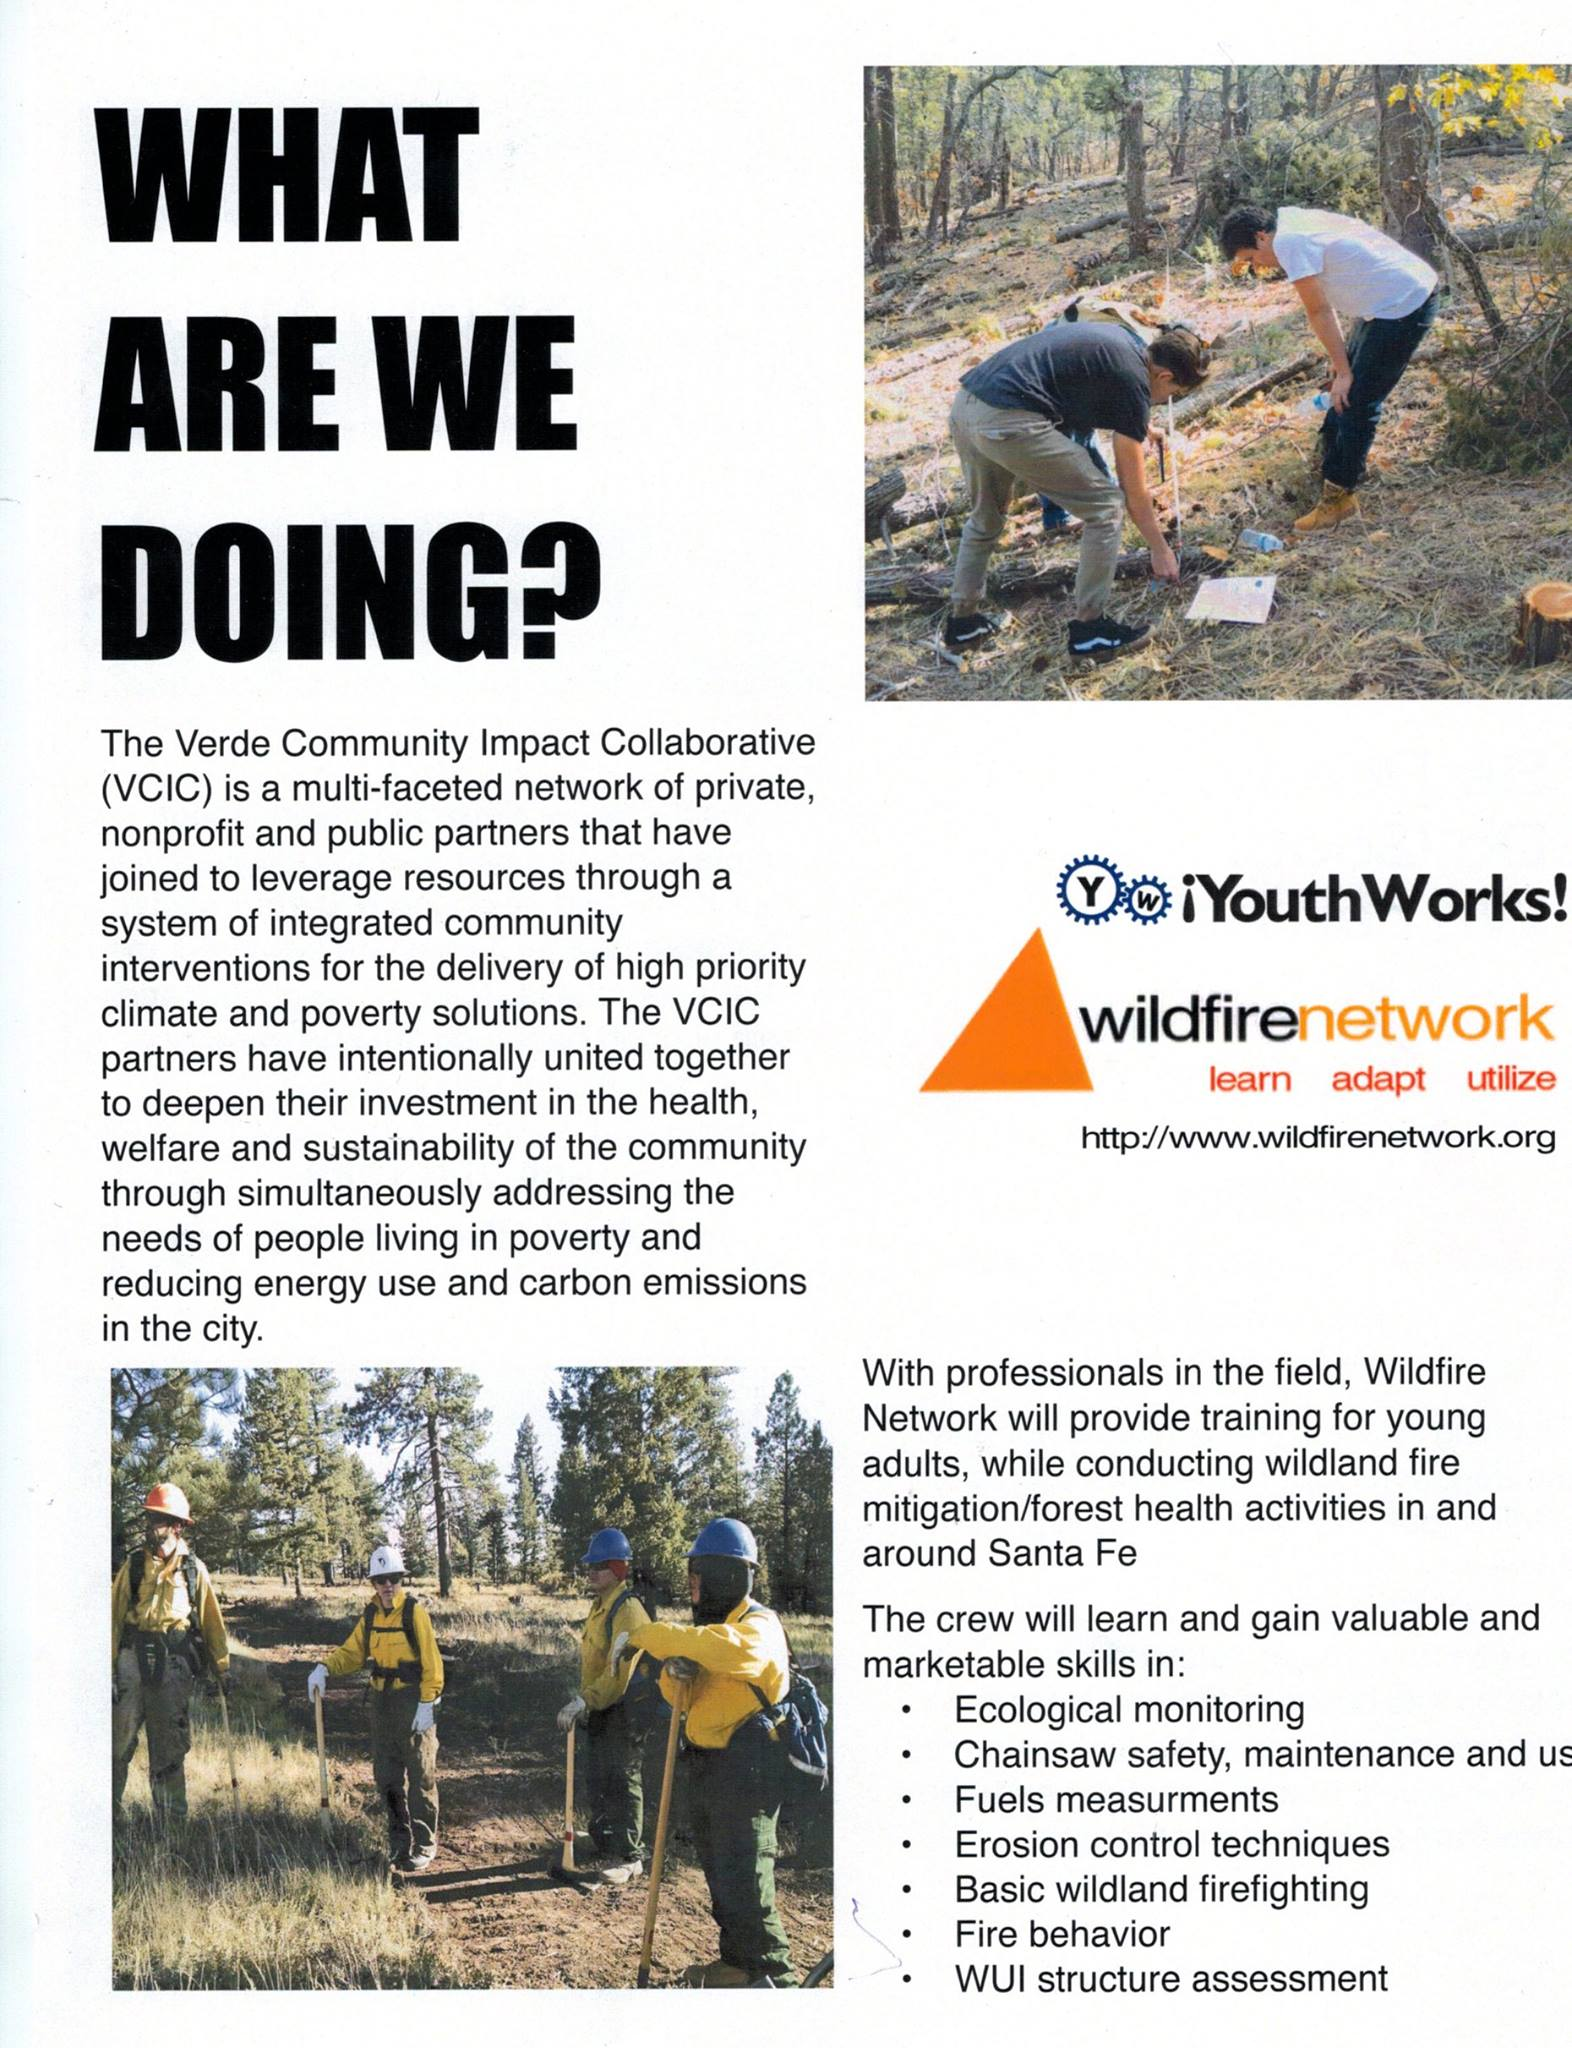 Wildfire network provides training for young adults as part of the Verde Community Impact Collaborative.